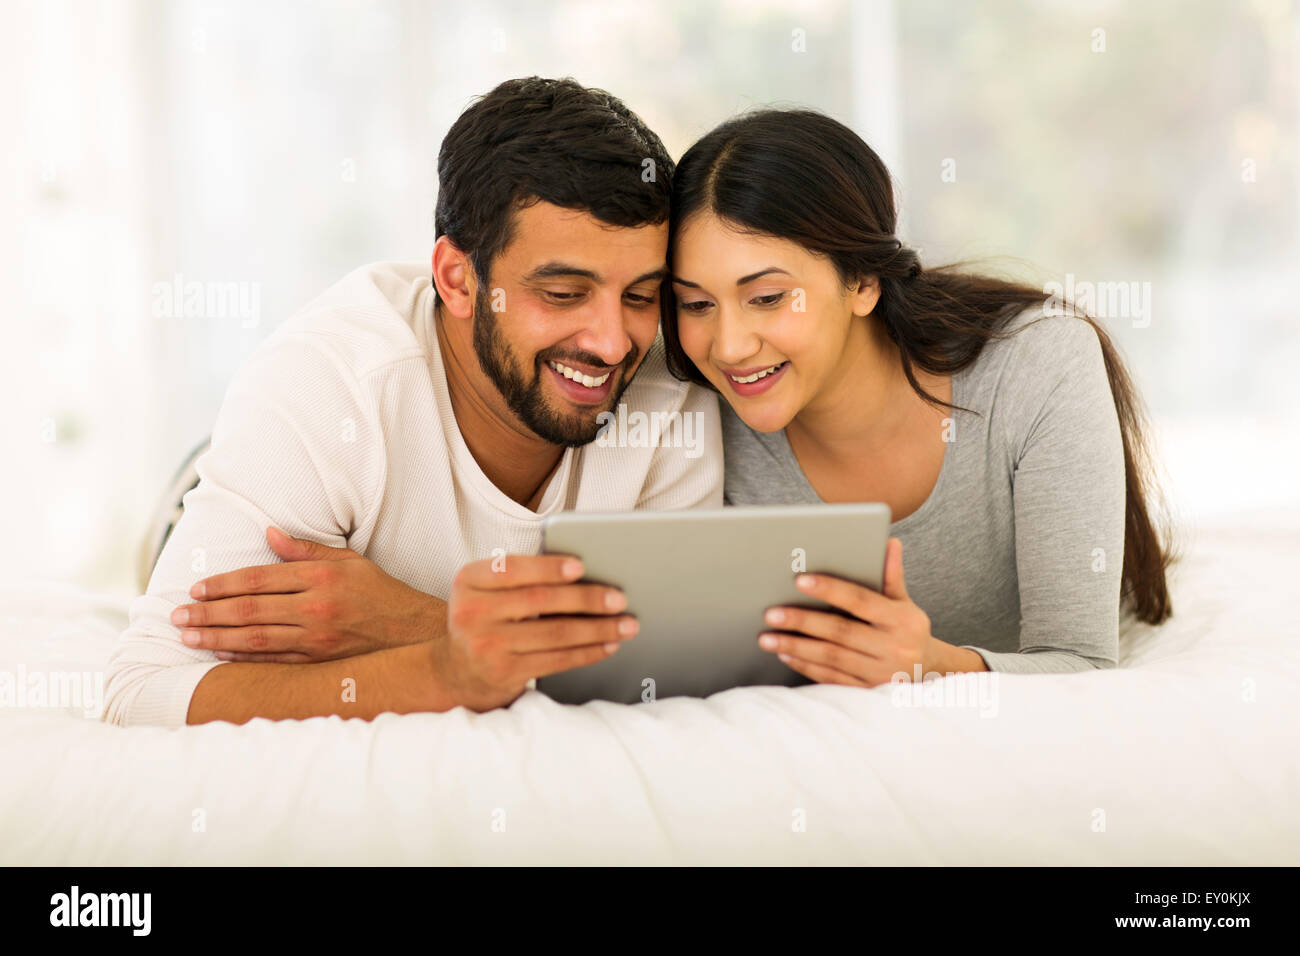 happy young Indian couple lying on bed and using tablet pc at home - Stock Image